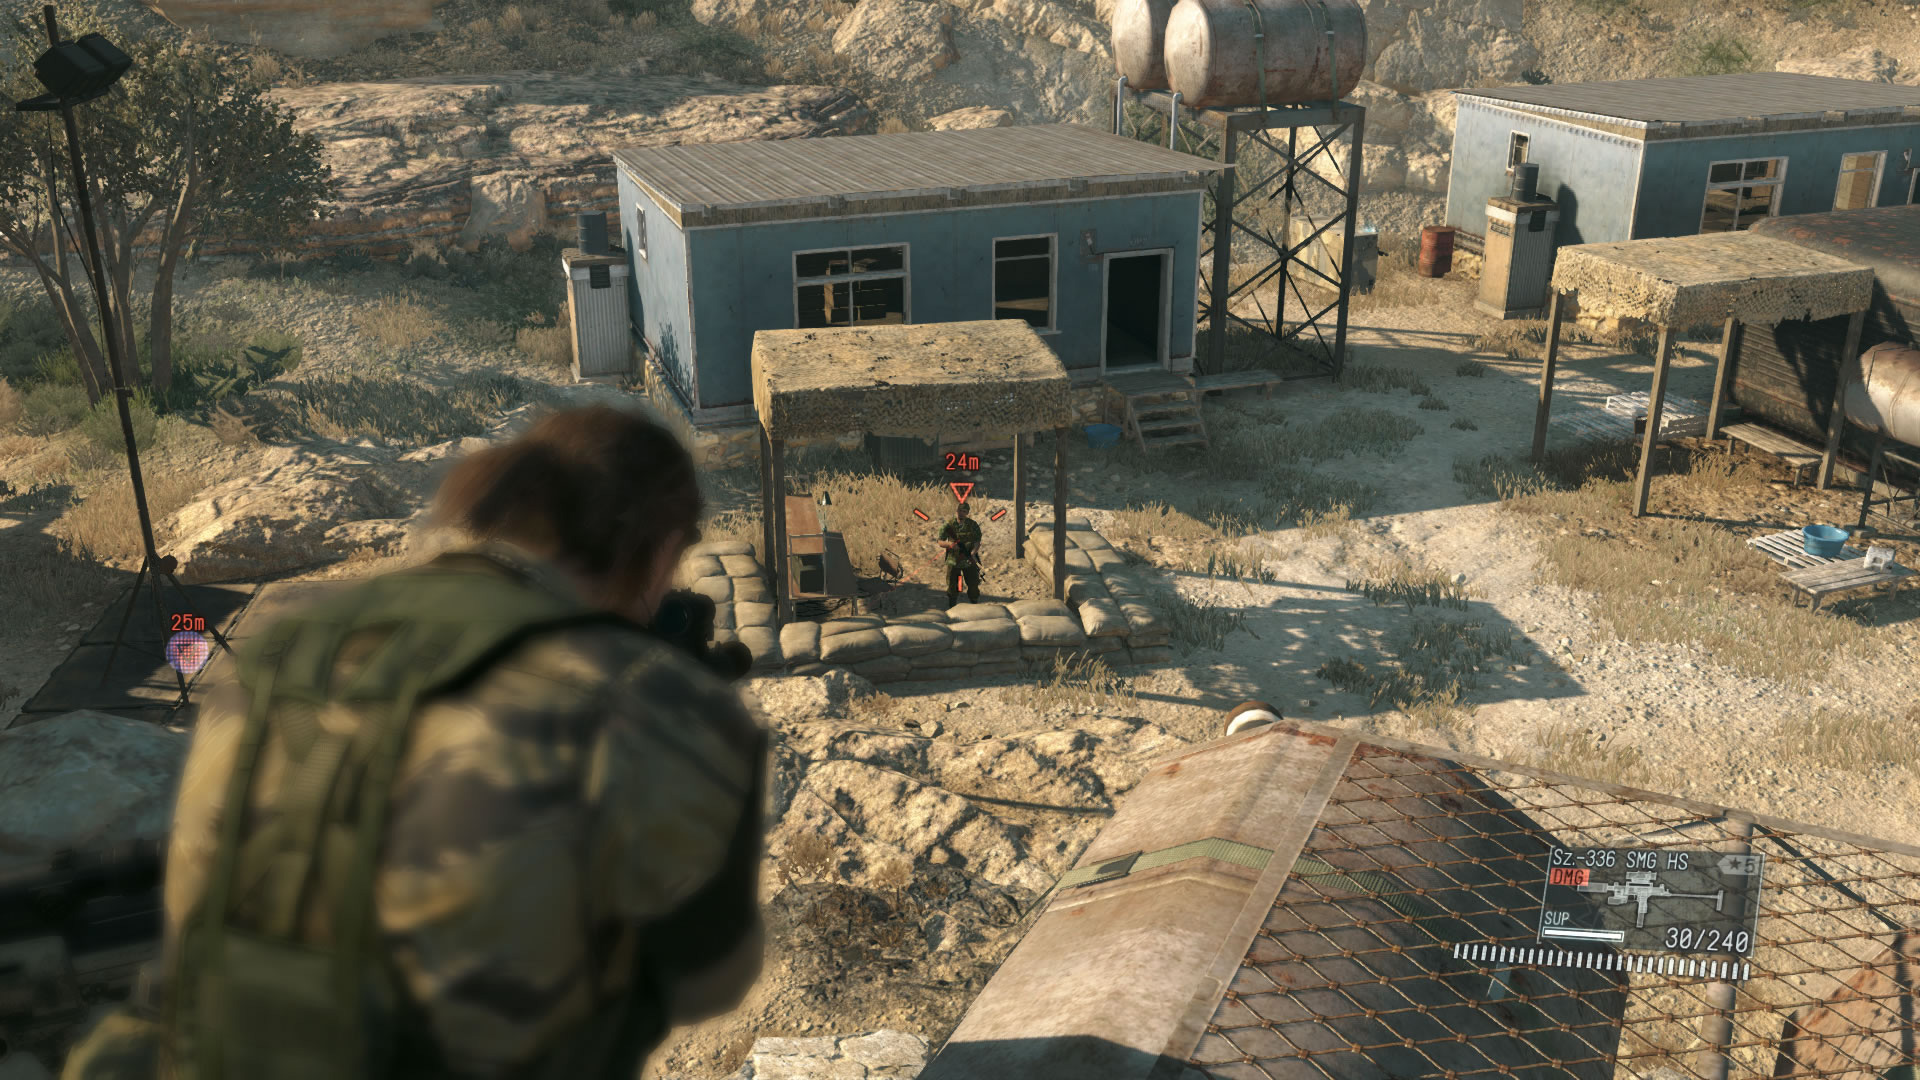 Metal-Gear-Solid-V-The-Phantom-Pain-E3-2015-Screen-Big-Boss-Shooting-Afghanistan